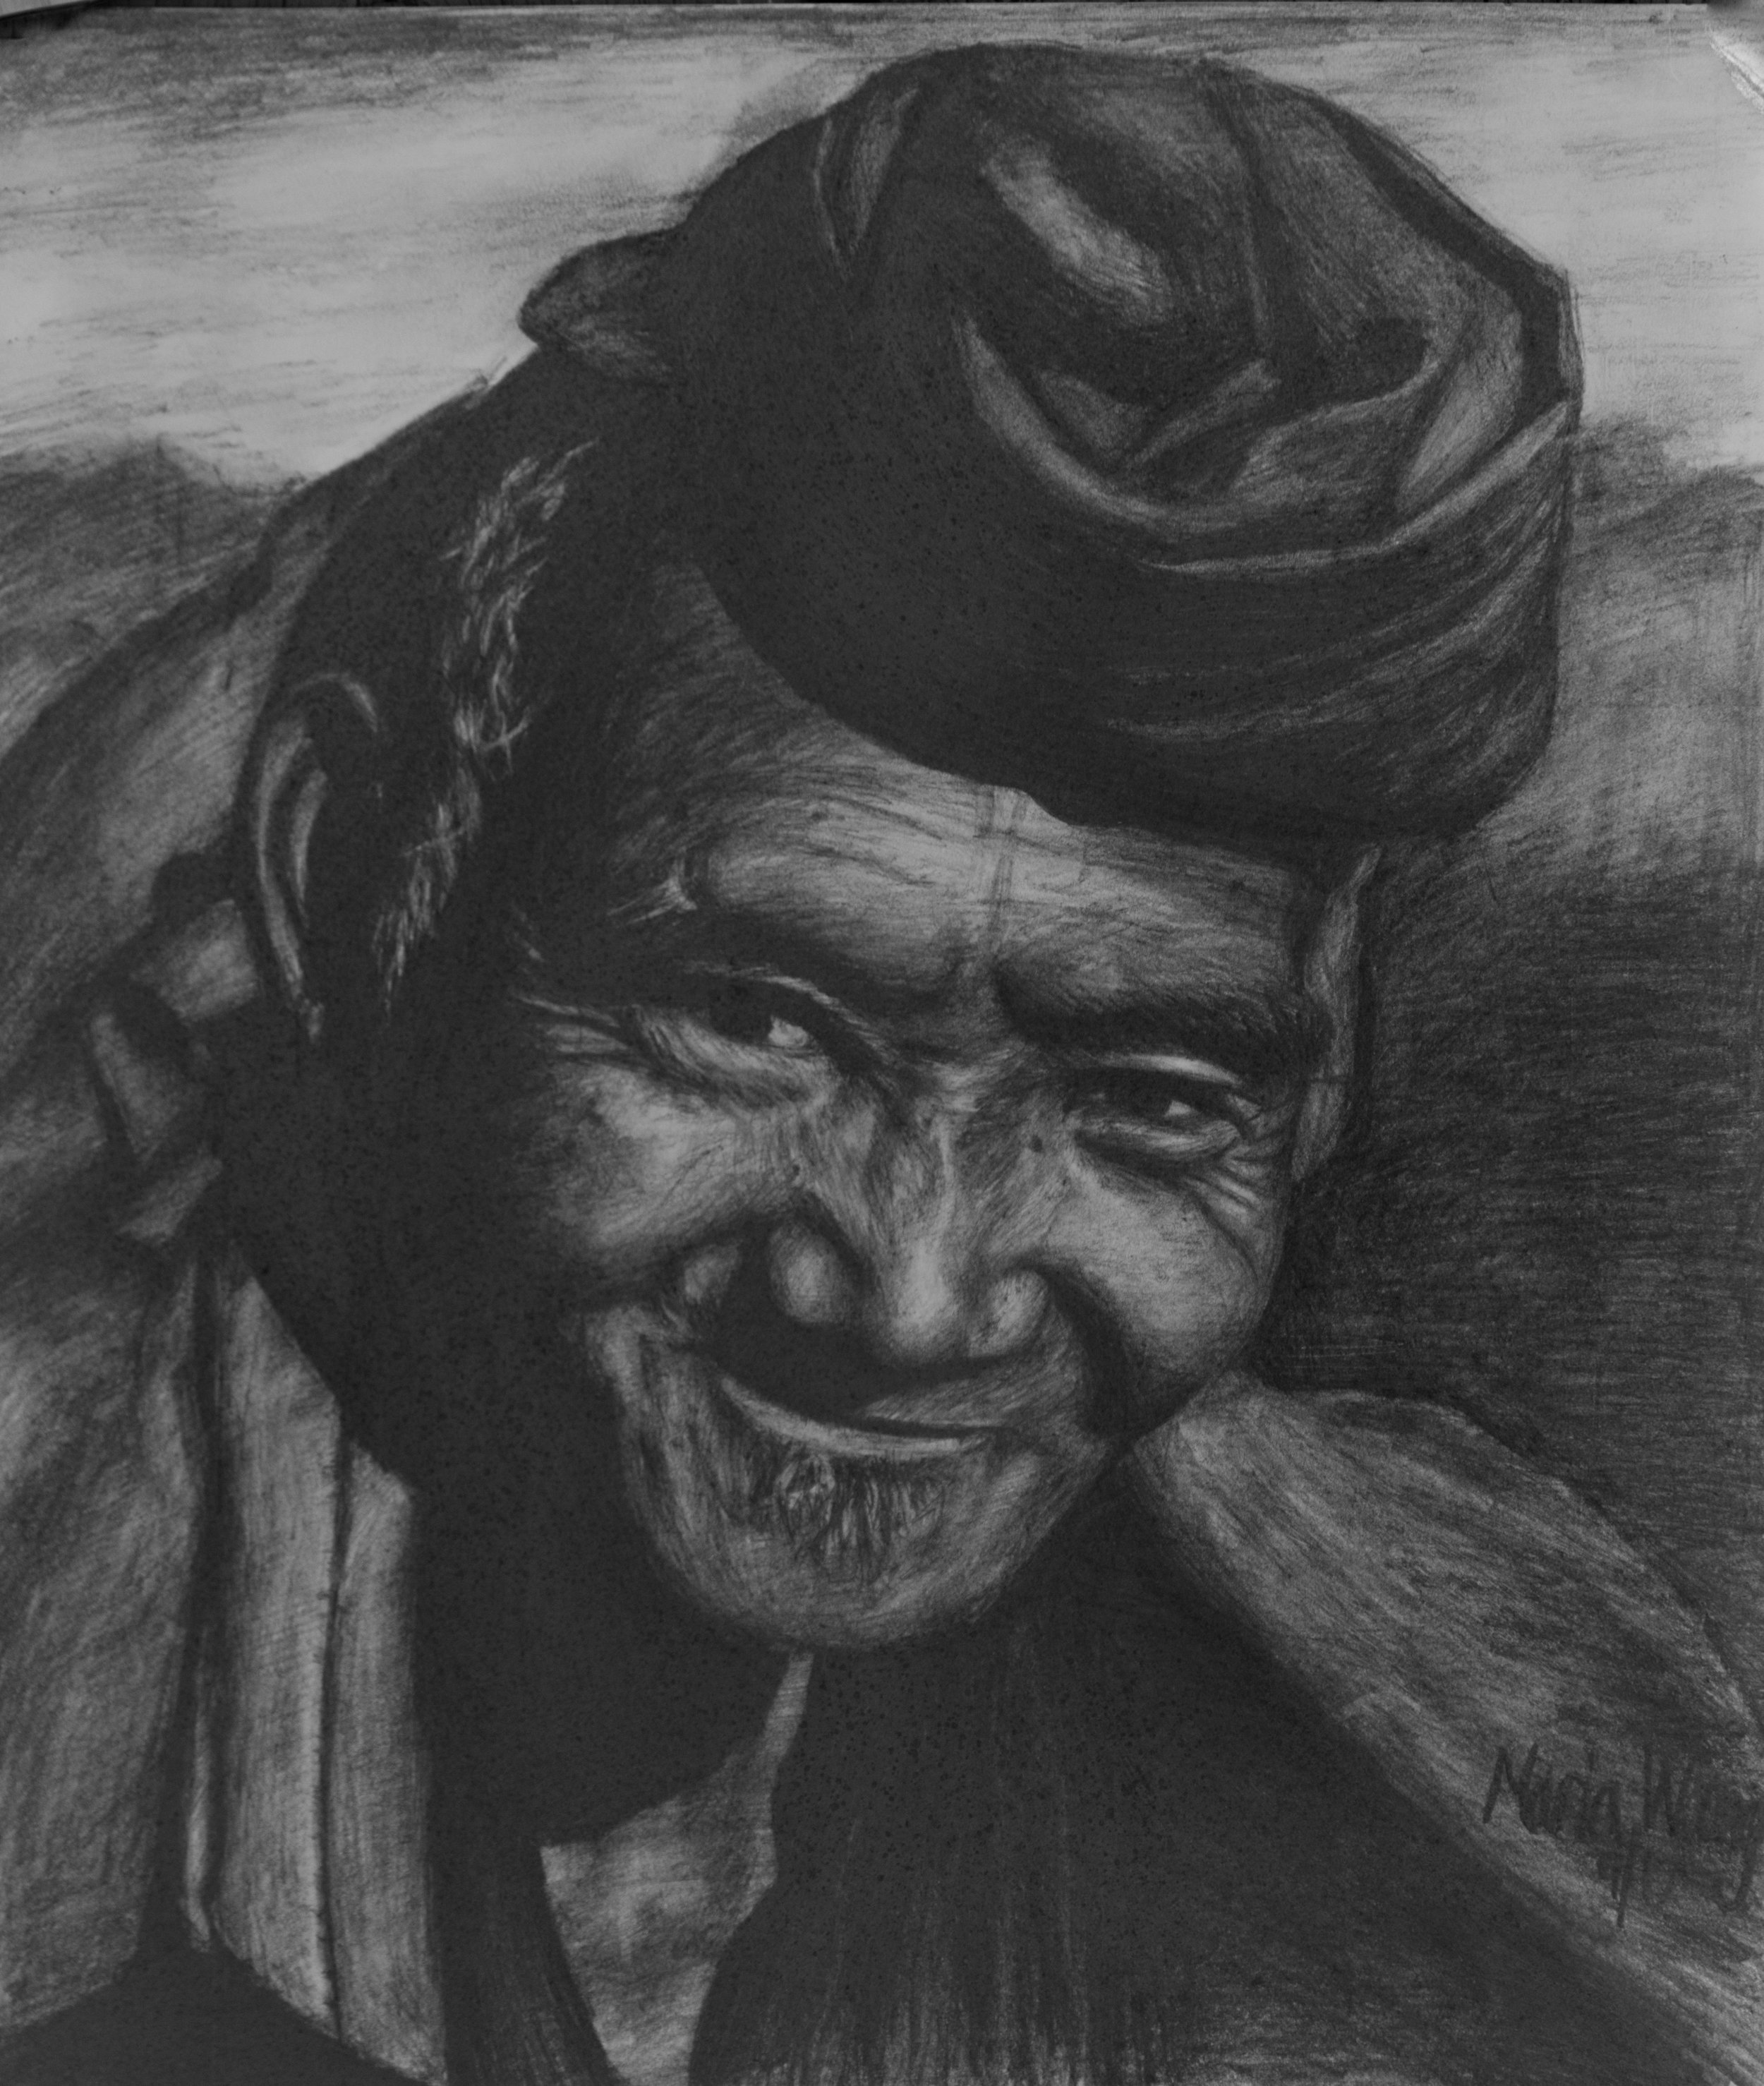 Man of the Mountains   I was browsing portraits one day, and I saw this man and his smile. I wanted to capture his happiness on paper. His joy, or so I imagine, comes from his carefree life as a tribesman in China.